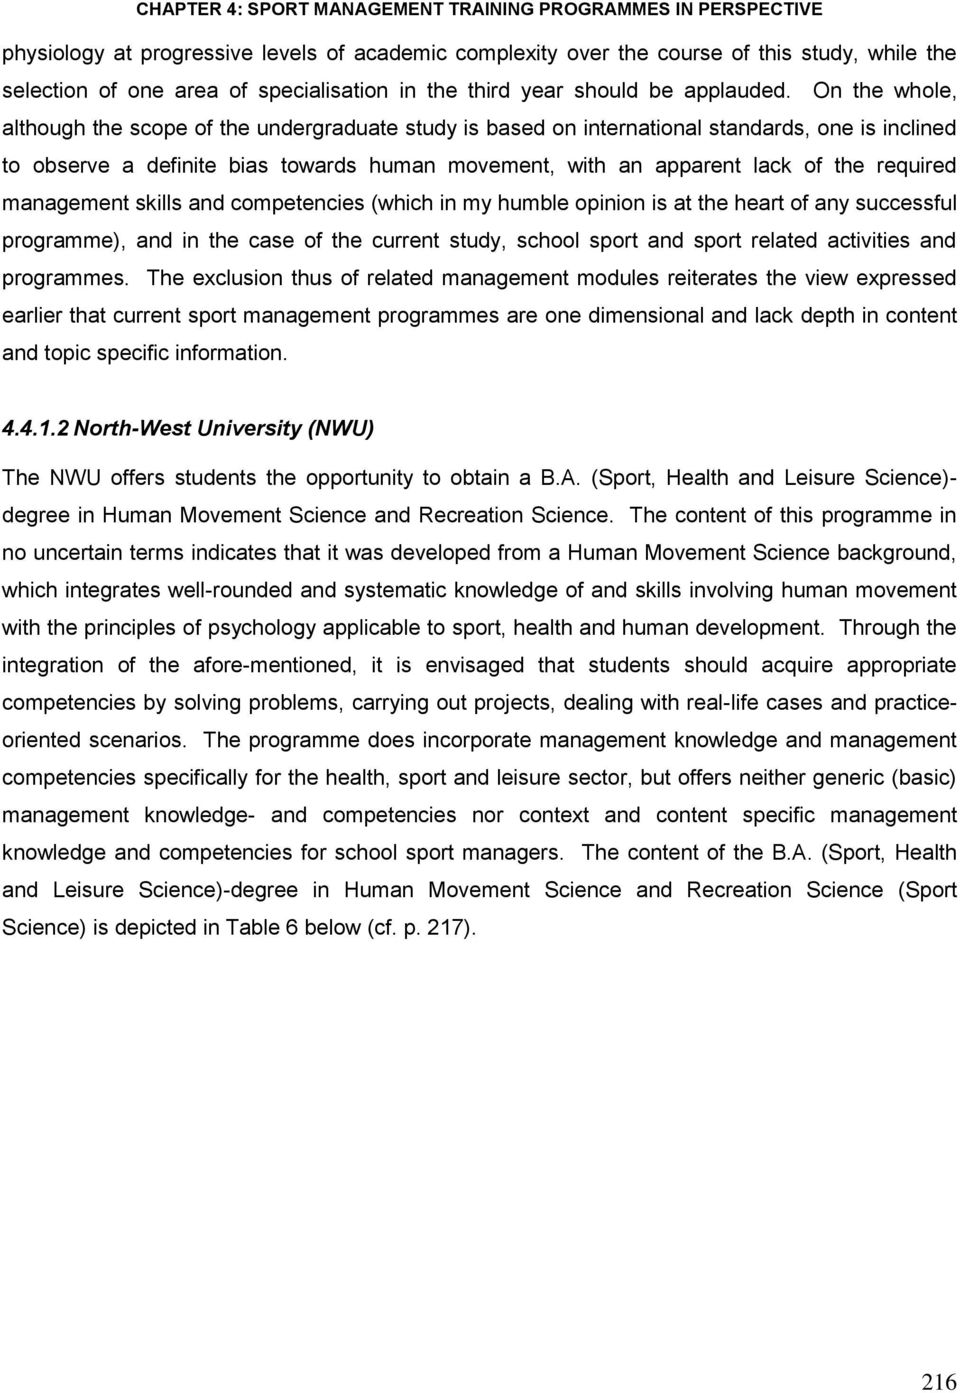 required management skills and competencies (which in my humble opinion is at the heart of any successful programme), and in the case of the current study, school sport and sport related activities